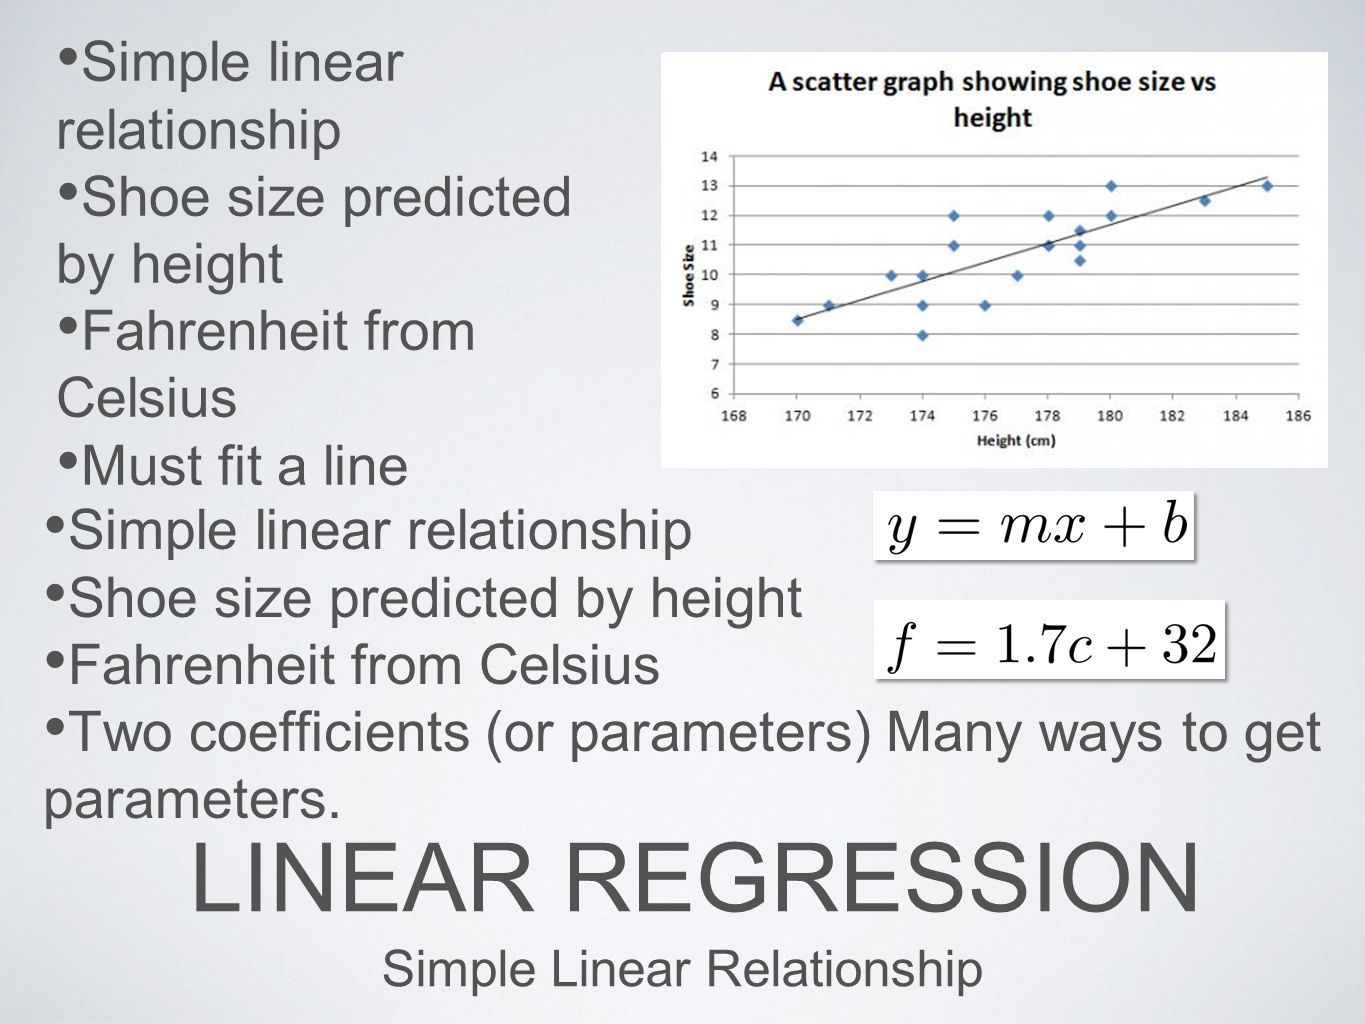 Simple Linear Relationship